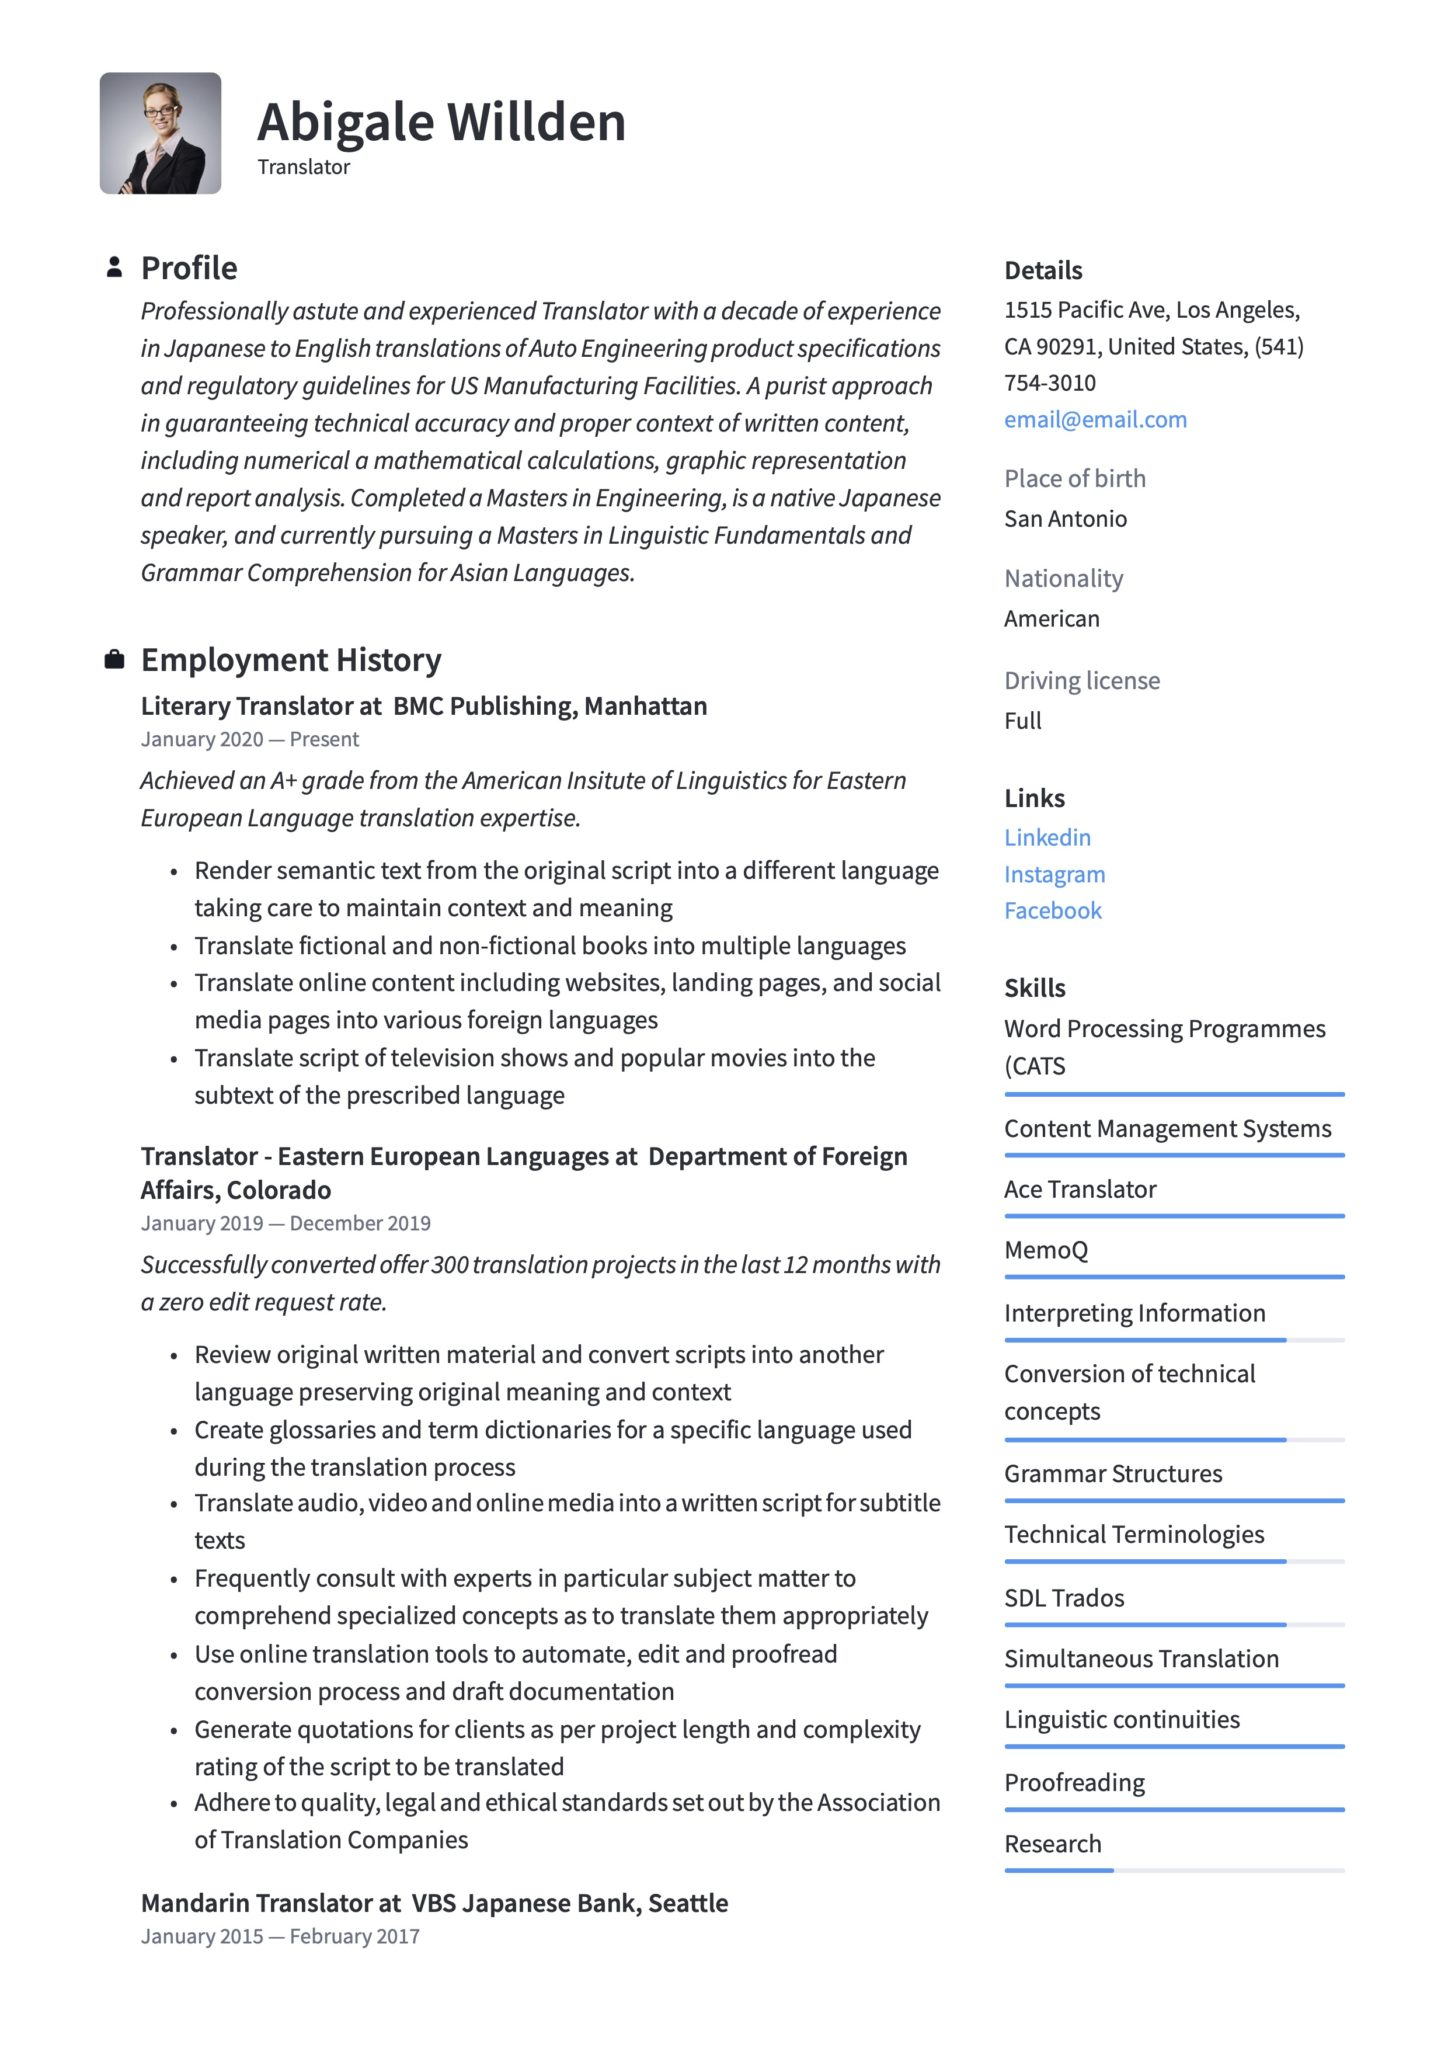 translator resume writing guide templates technical scaled server tasks for spotify home Resume Technical Translator Resume